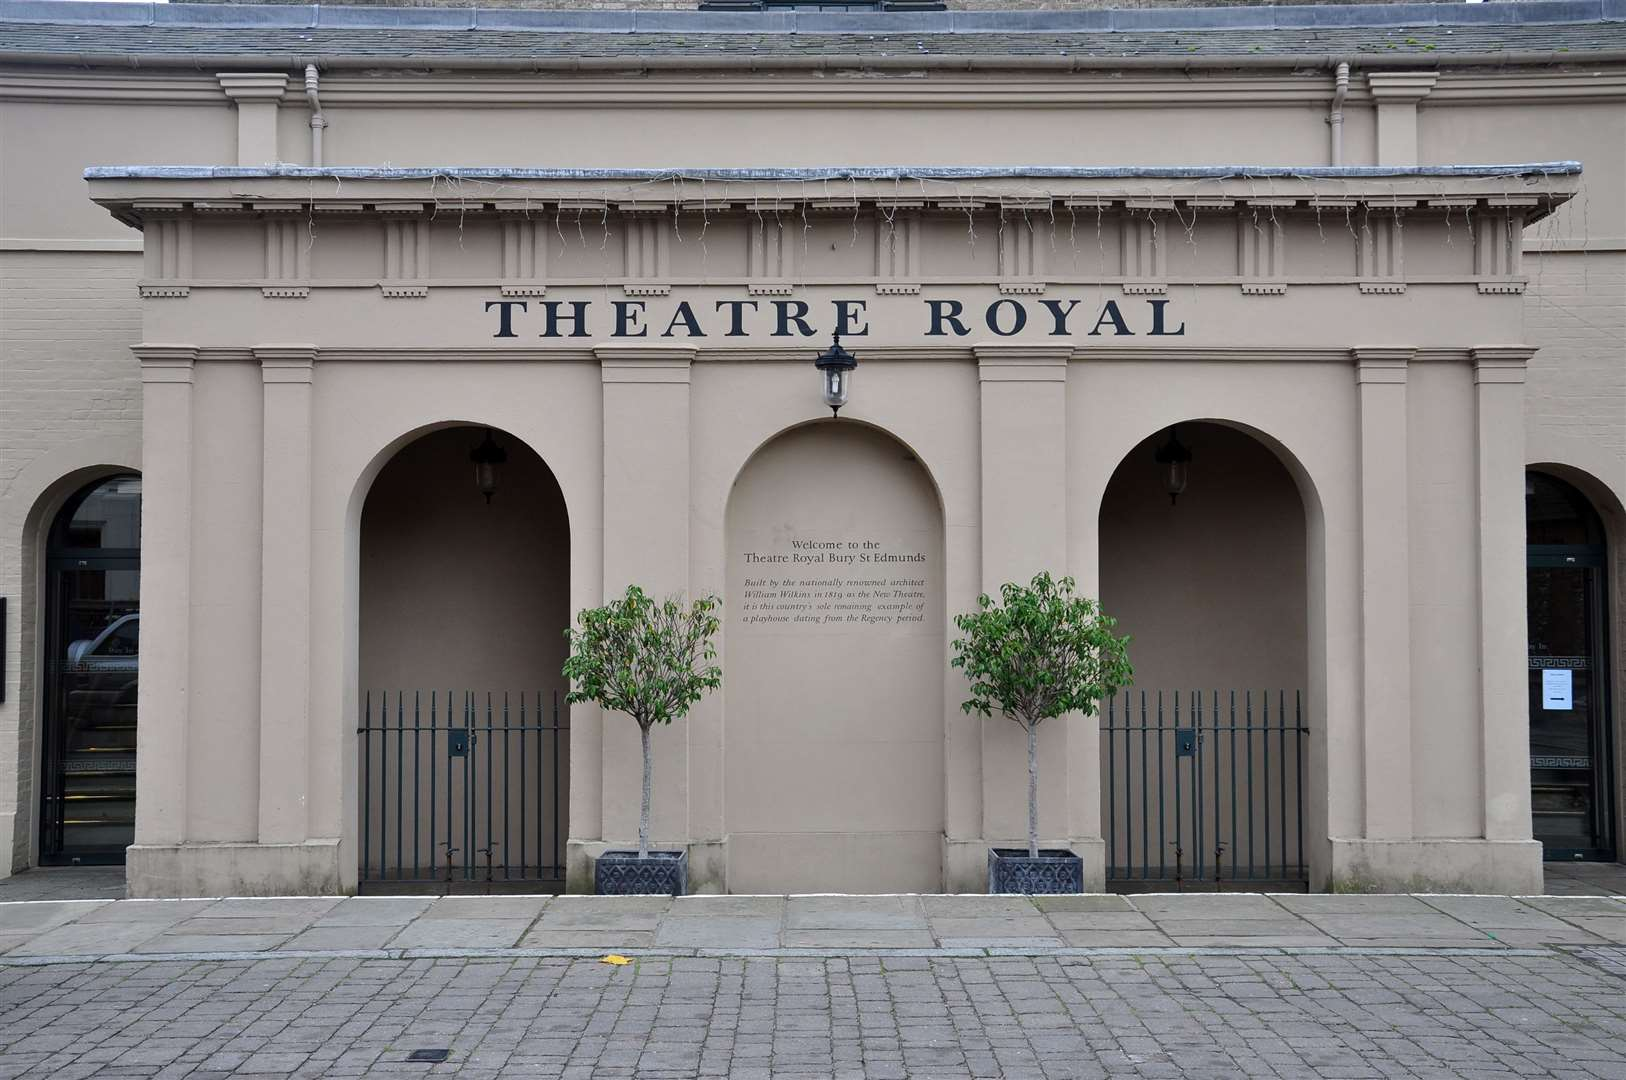 Theatre Royal Bury St Edmunds